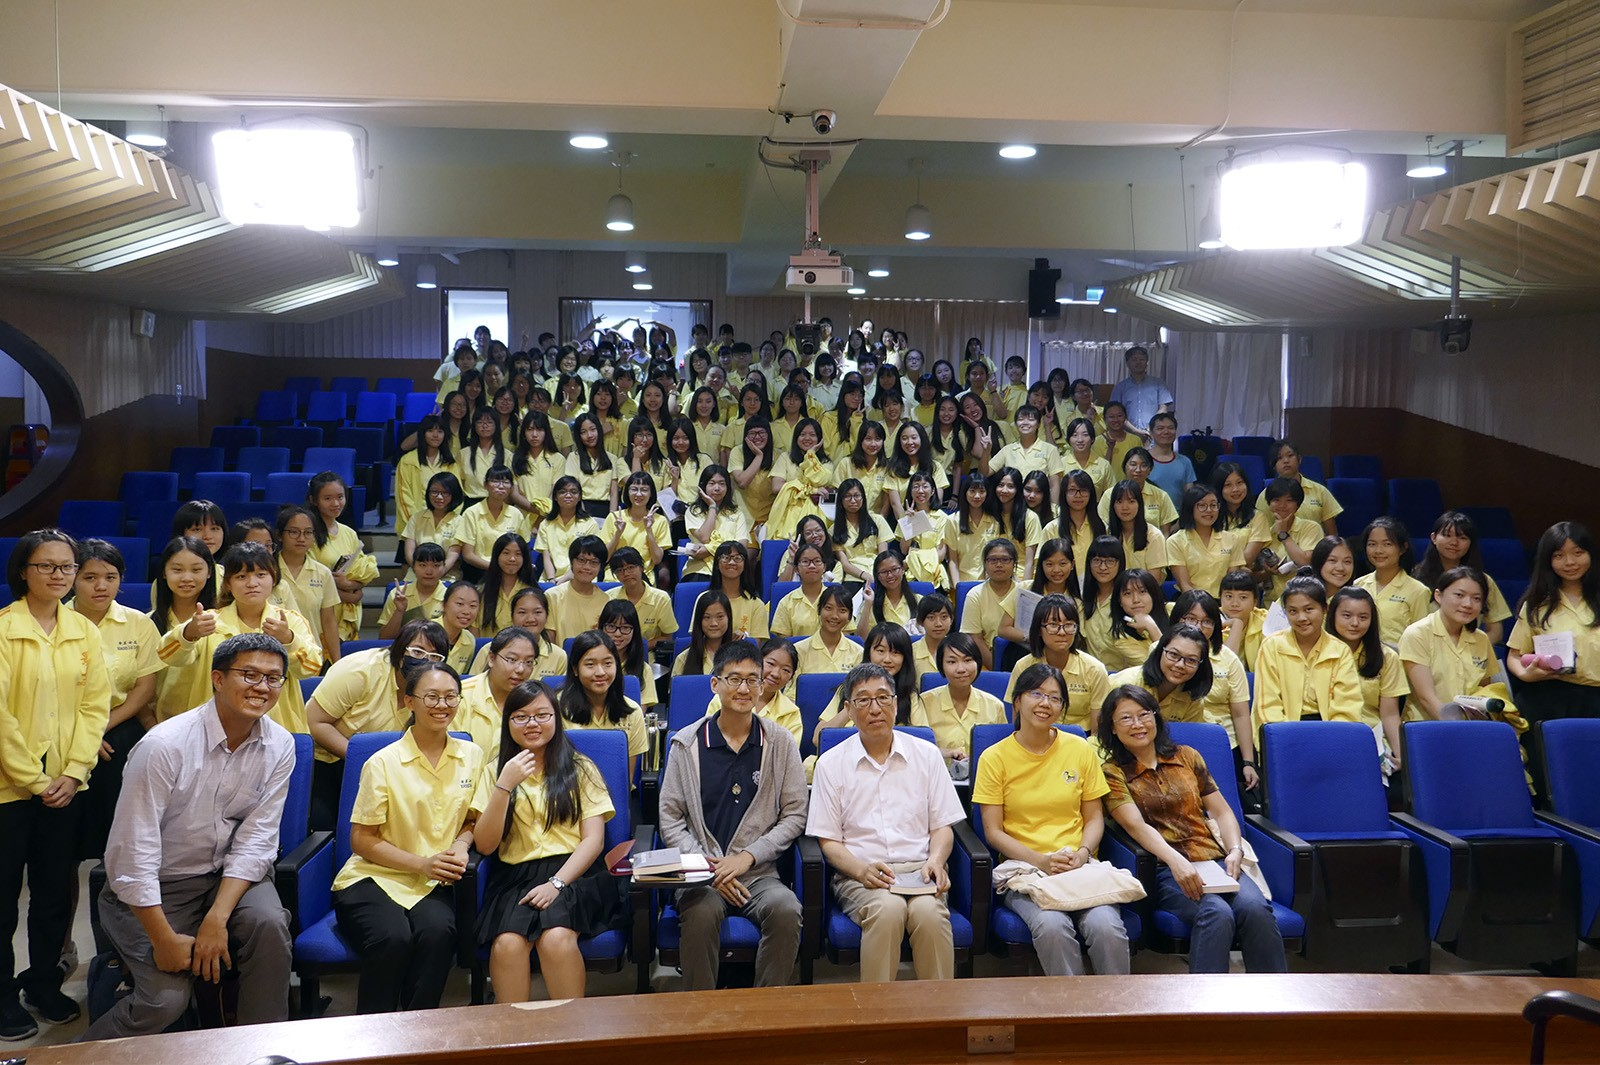 Professor Kuo (third from right in front row) delivered a talk at Taipei JingMei Girls High School.